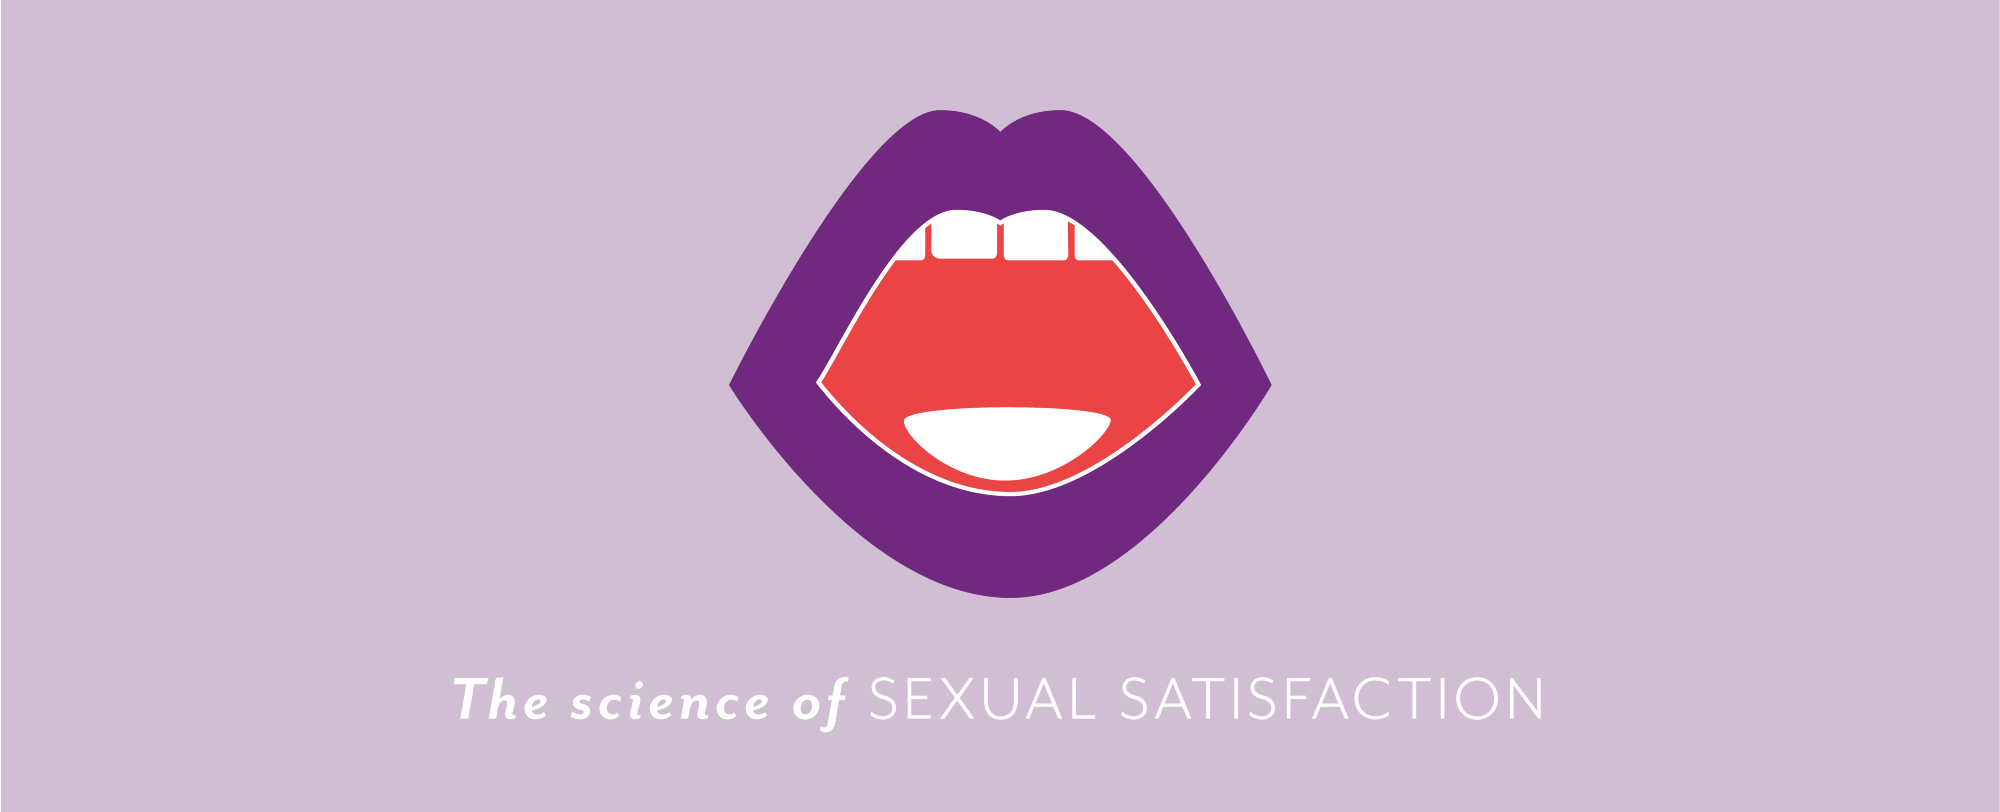 The science of sexual satisfaction